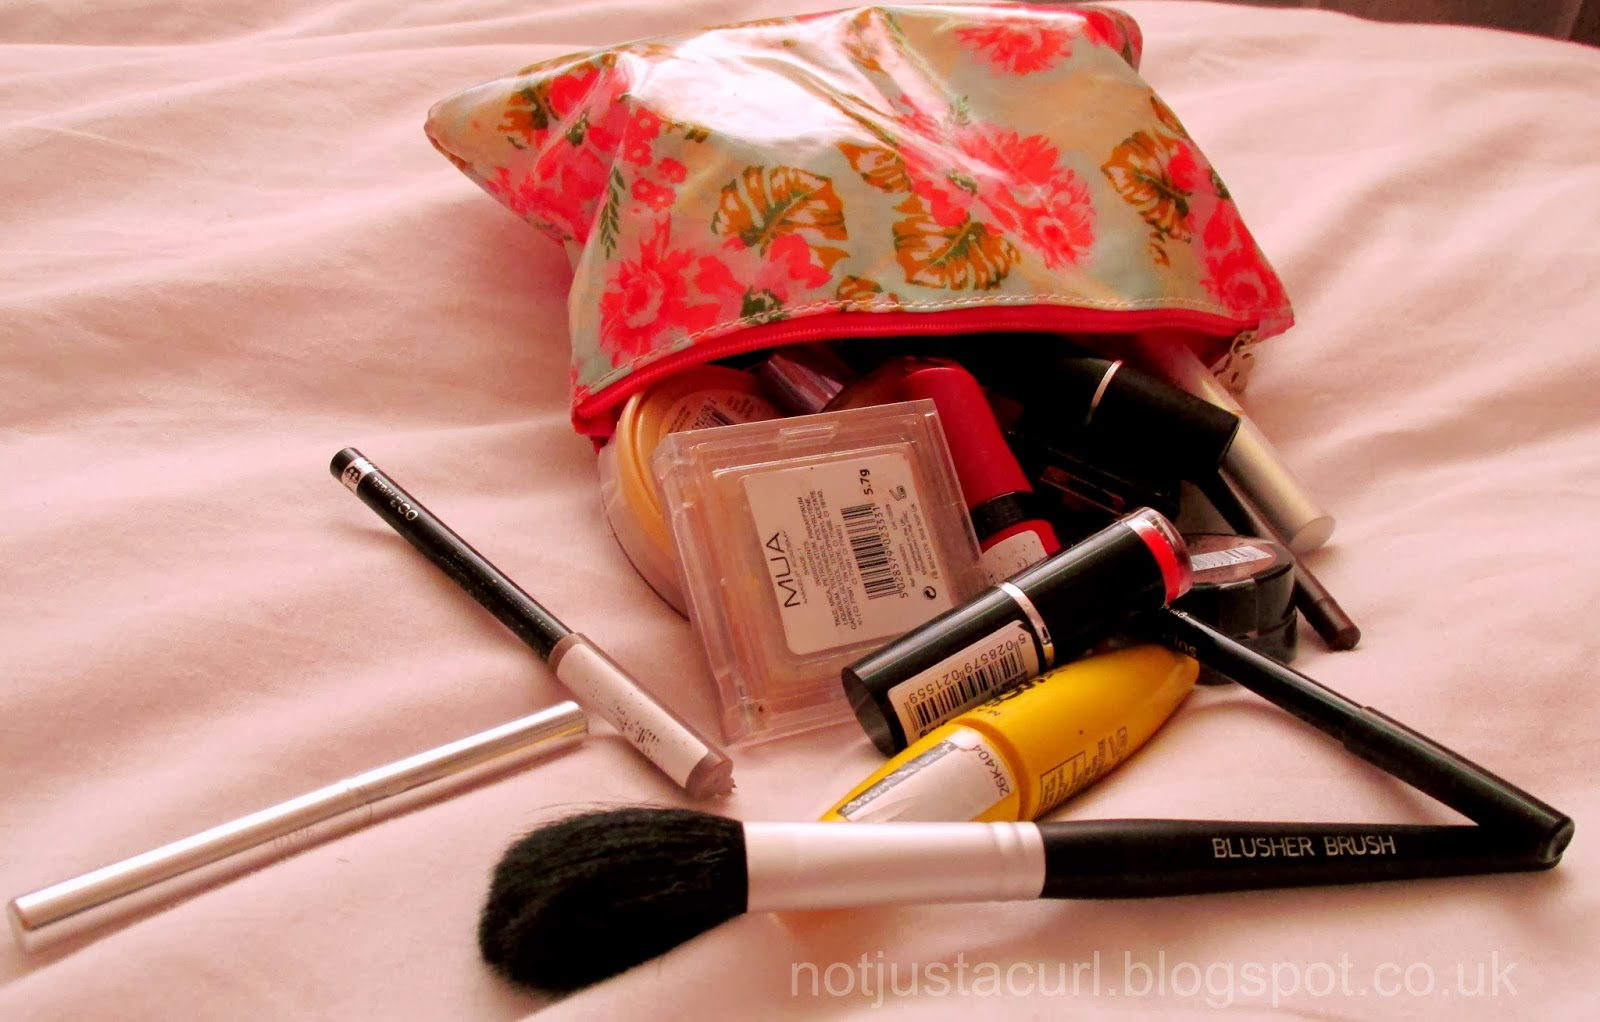 A photo of my make-up bag contents